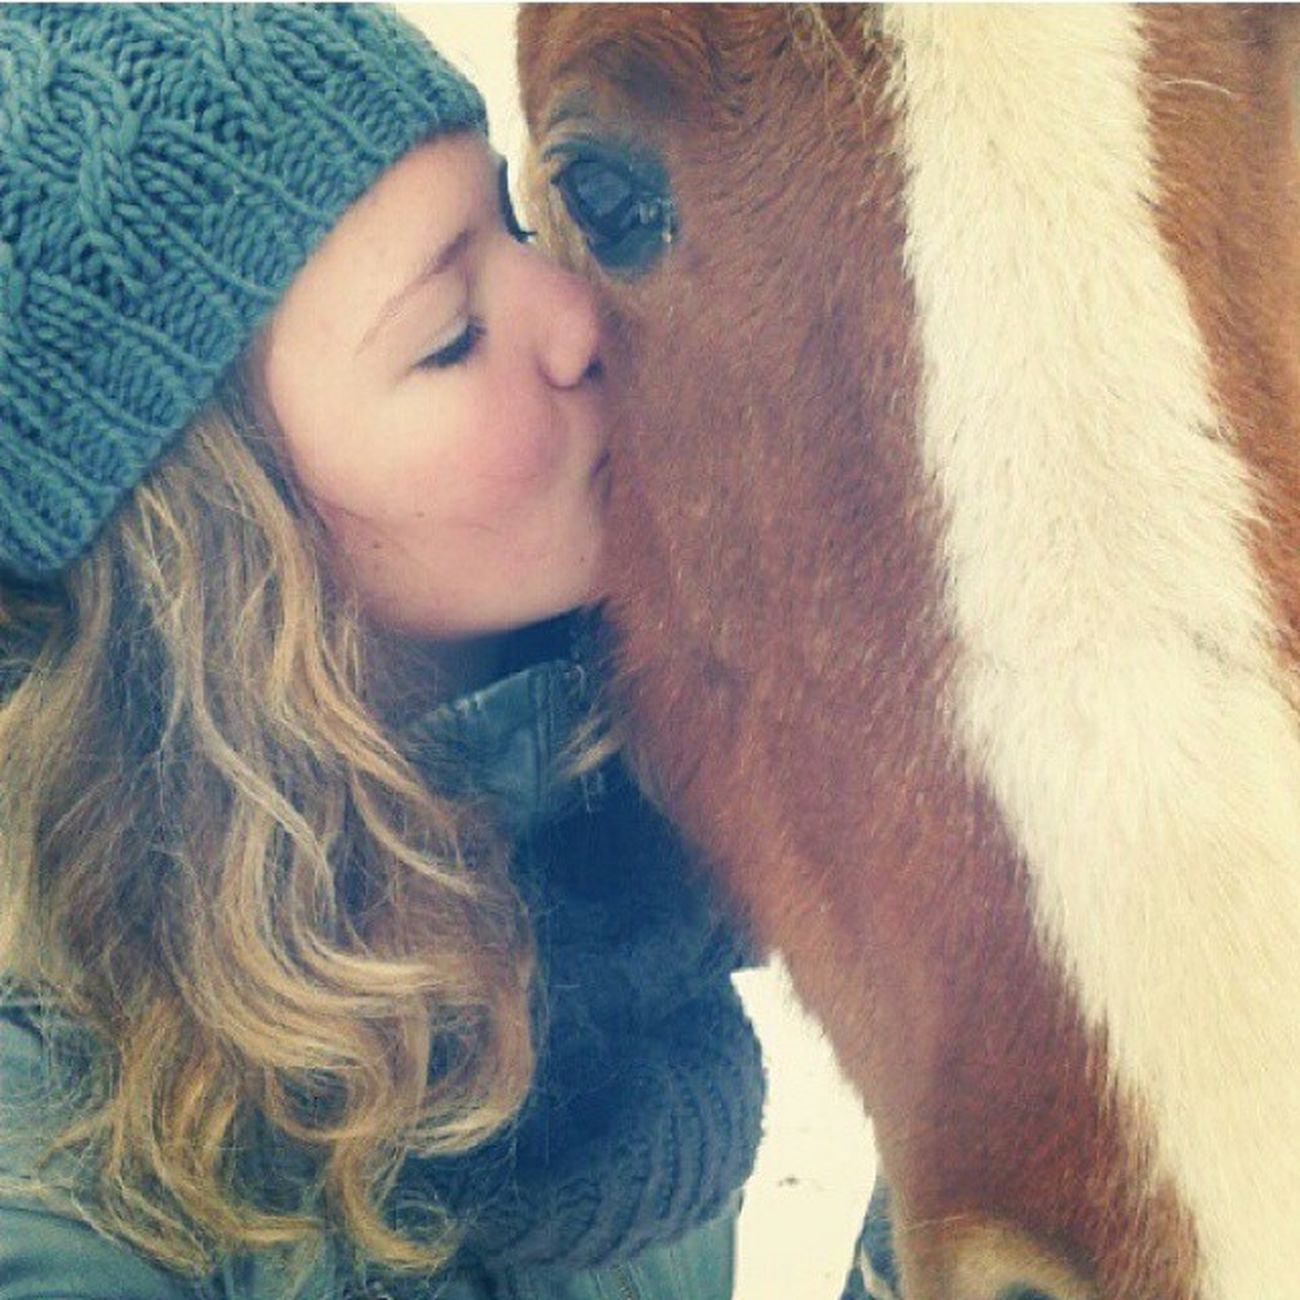 Throwback . This horse has my heart. Weird to say, but she's one of my best friends. Weird how much you can count on an animal. I don't regret a thing. She's the cutest, loveliest, best horse ever. She wouldn't hurt anything or anyone. She wants to work for you, sometimes she's trying to play you but in the end, she will do what you ask her. She always comes to you if you call her and loves attention.. And food. Ksorry for this dramatic spam lol. I just miss herrr